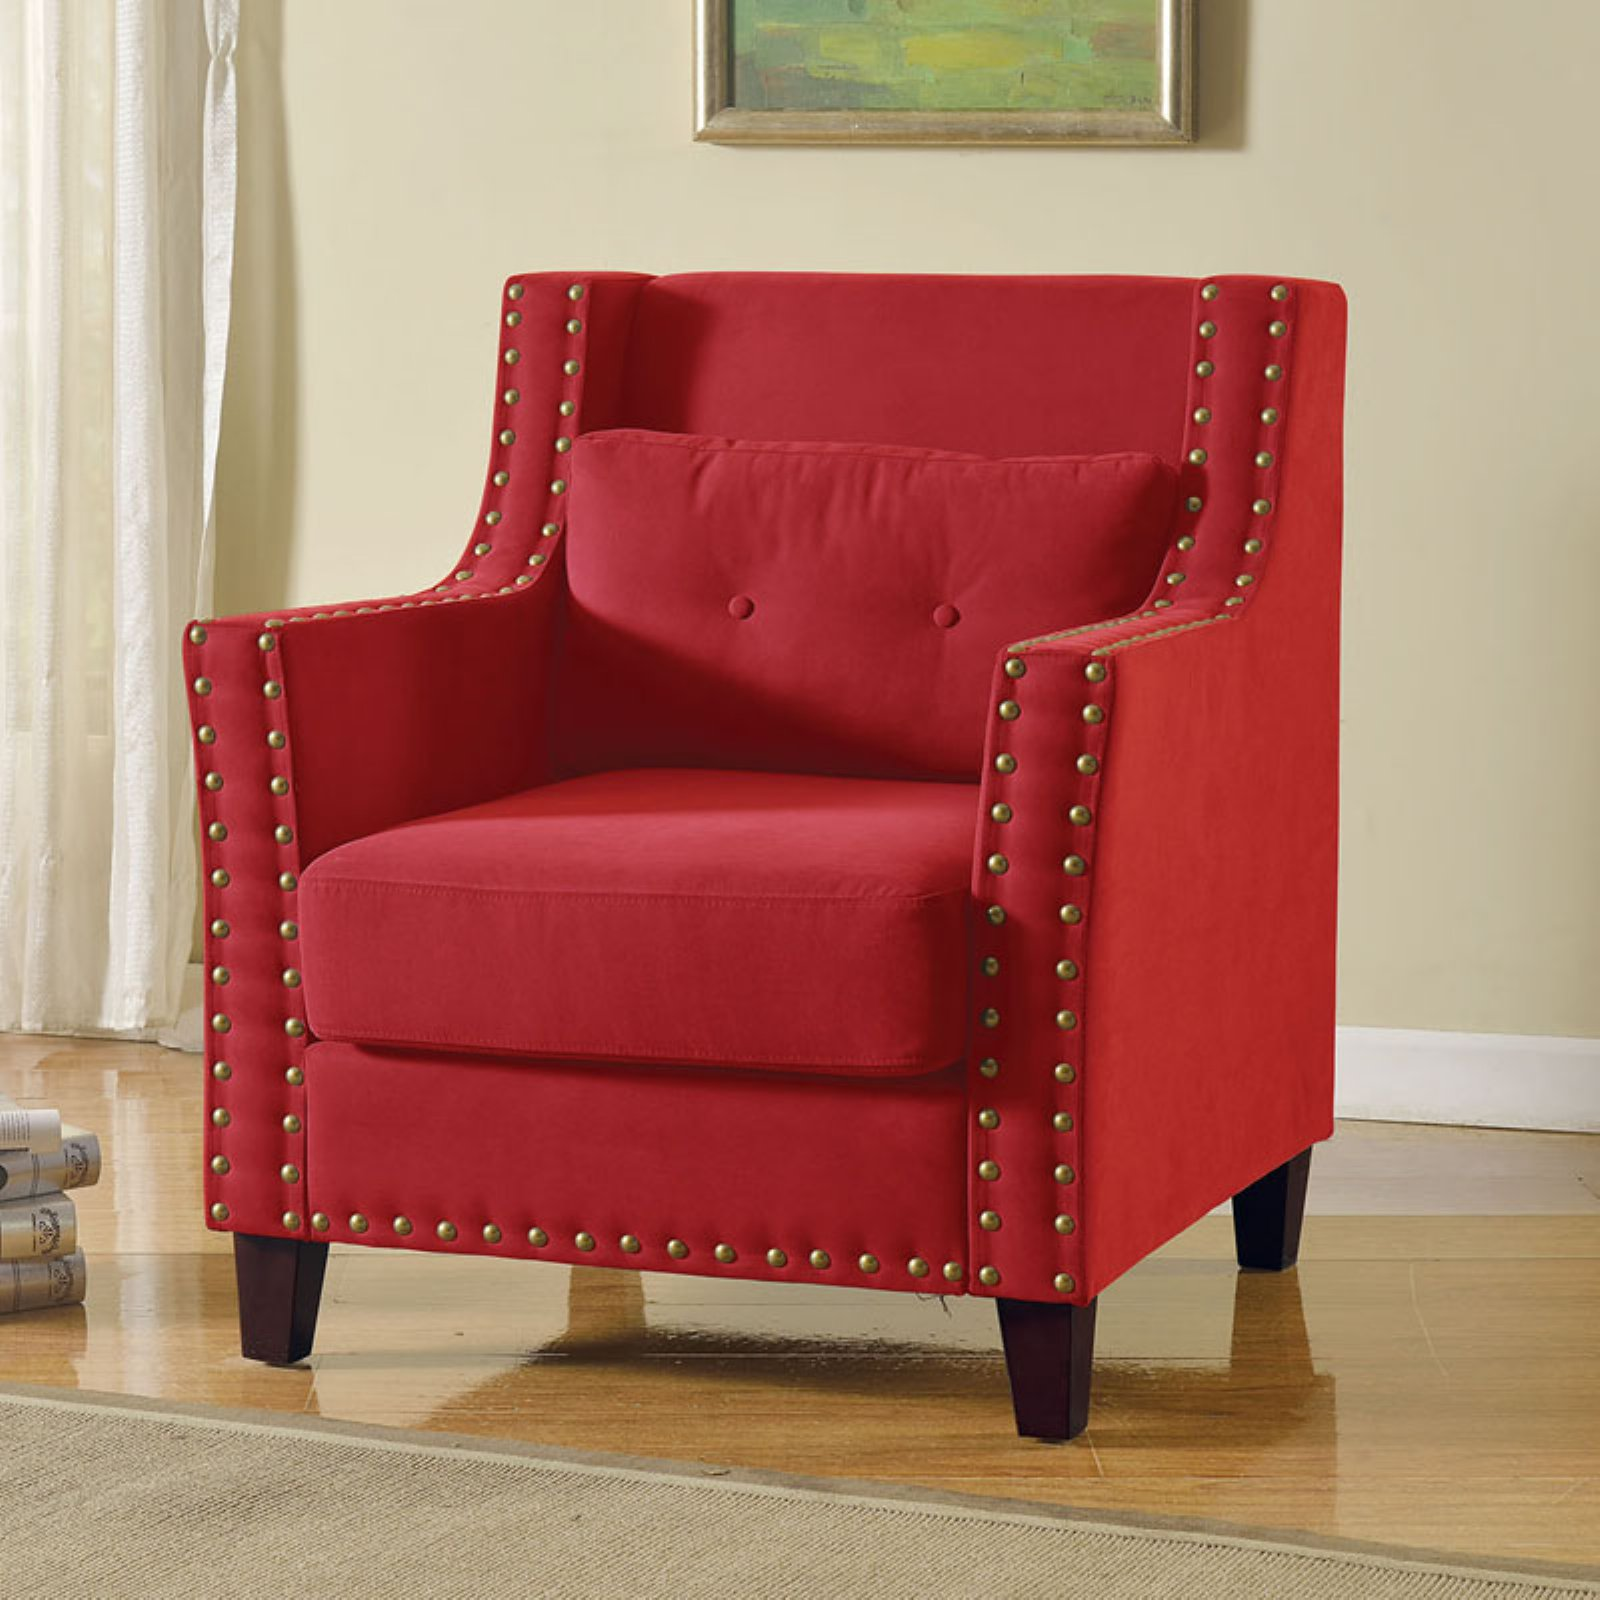 Awesome Acme Furniture Cibil Accent Chair Gmtry Best Dining Table And Chair Ideas Images Gmtryco